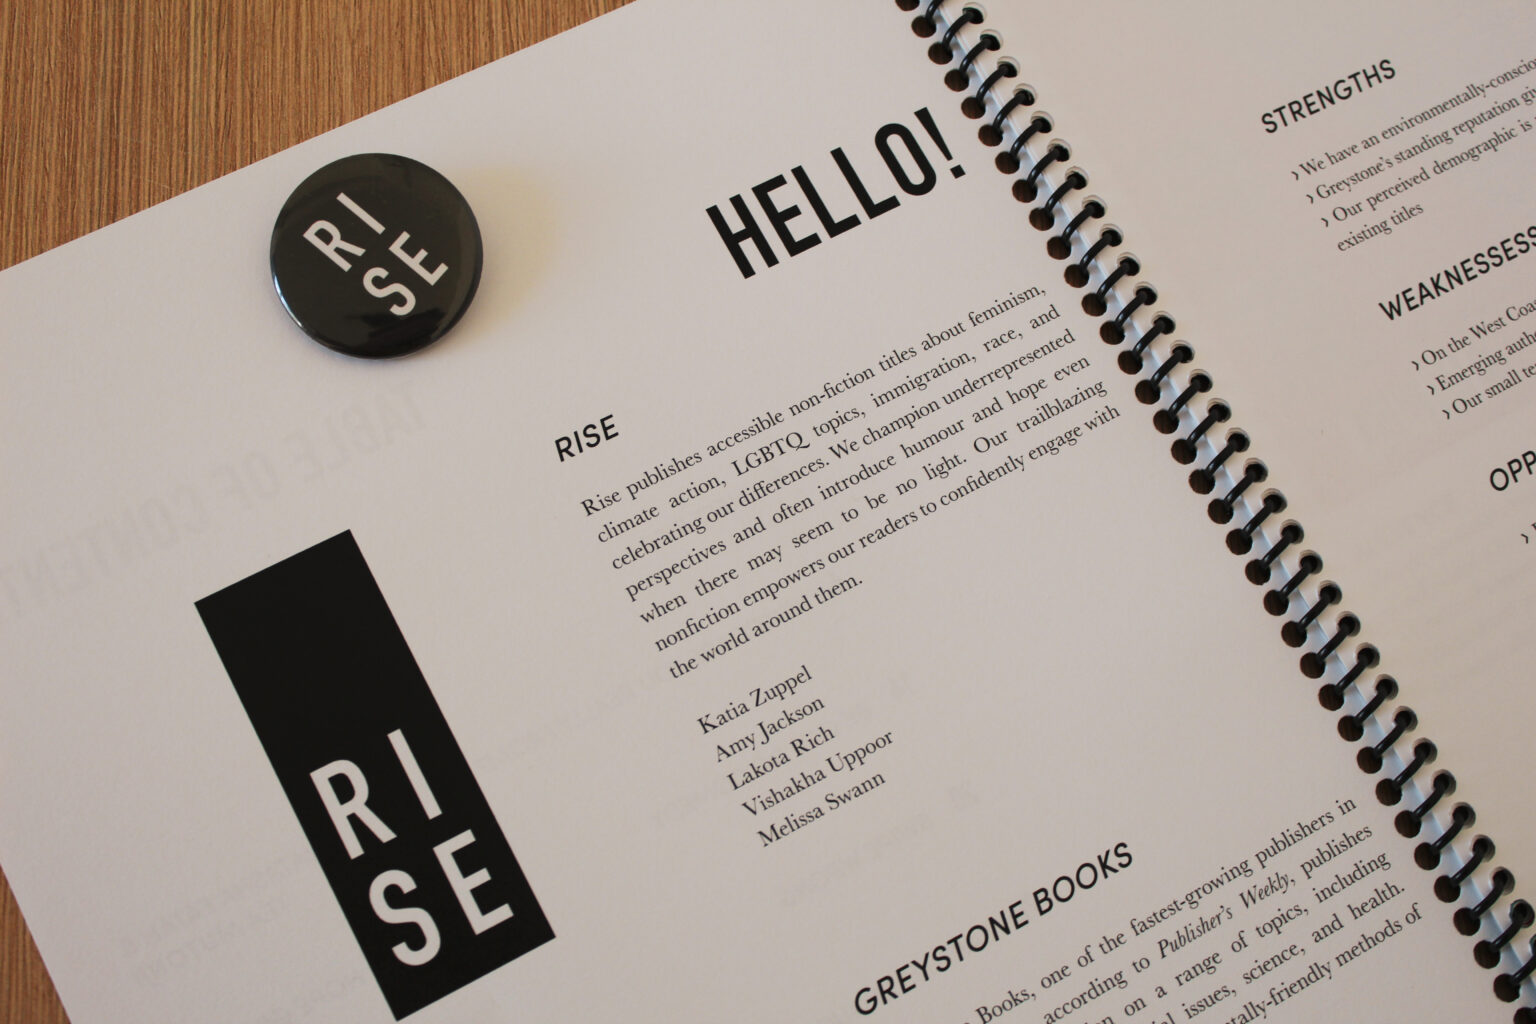 RISE project materials – mission statement page and button